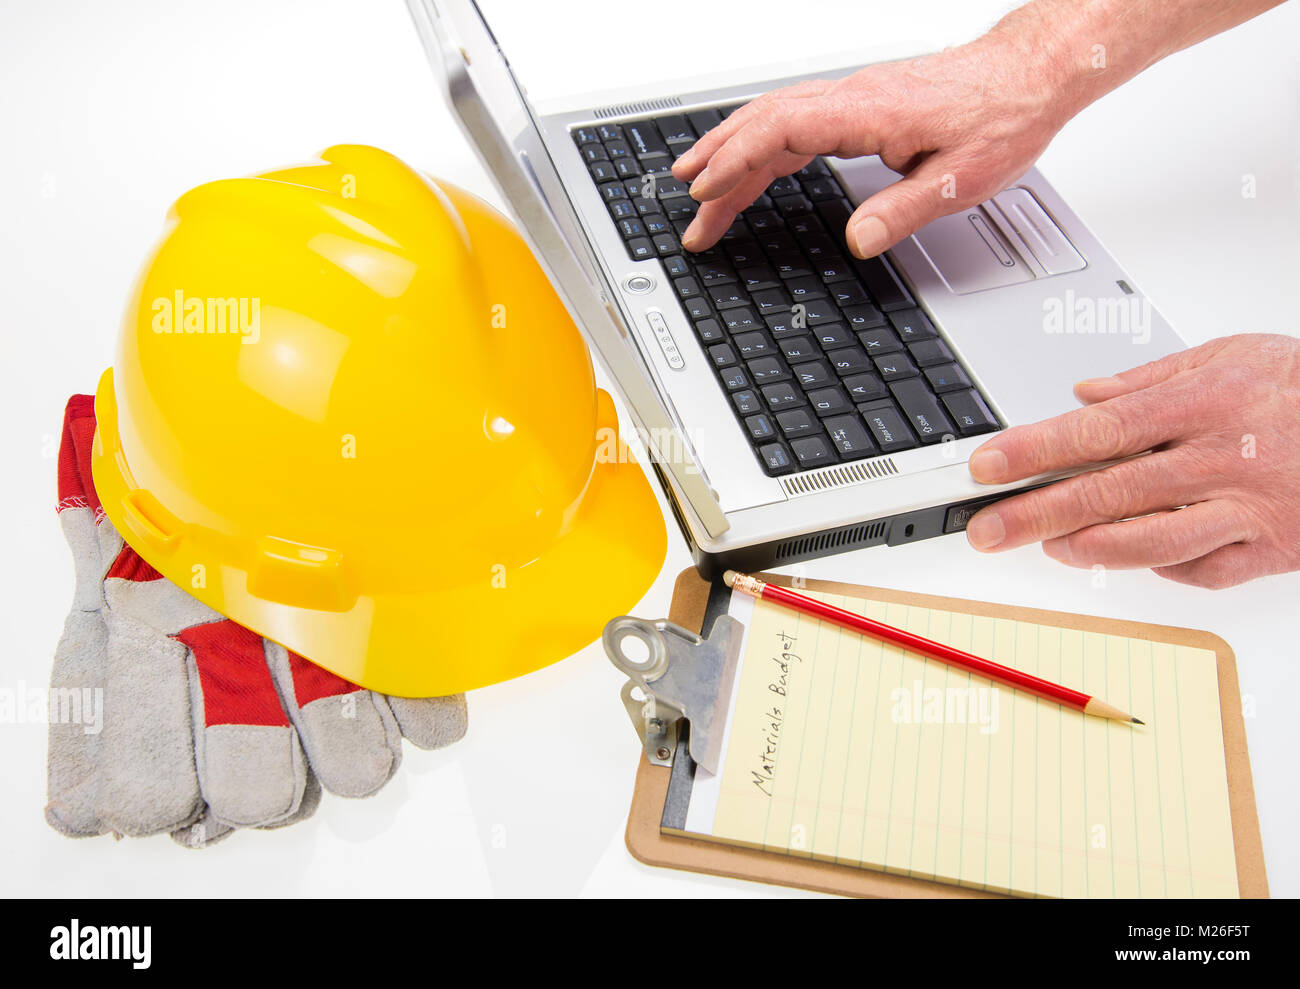 Highkey set with Helmet and blueprint plans on laptop - Stock Image